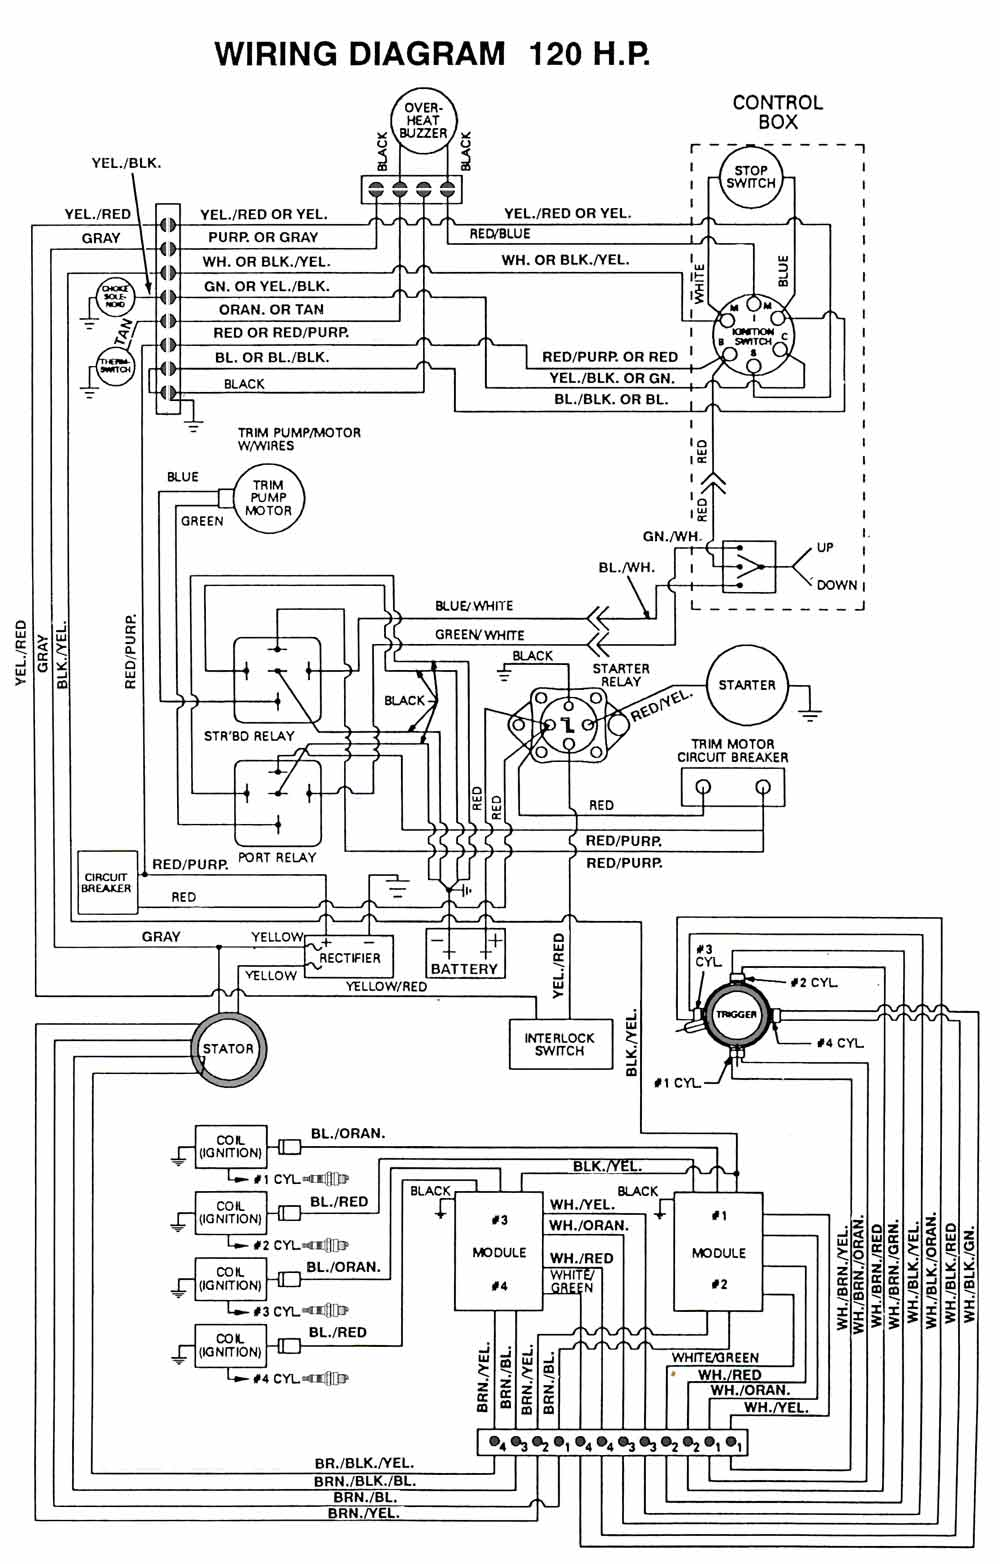 55 Hp Chrysler Outboard Diagram Wiring Library As Well 1970 Chevy C10 Furthermore Force 120 Thru 1991a Models Diagrams